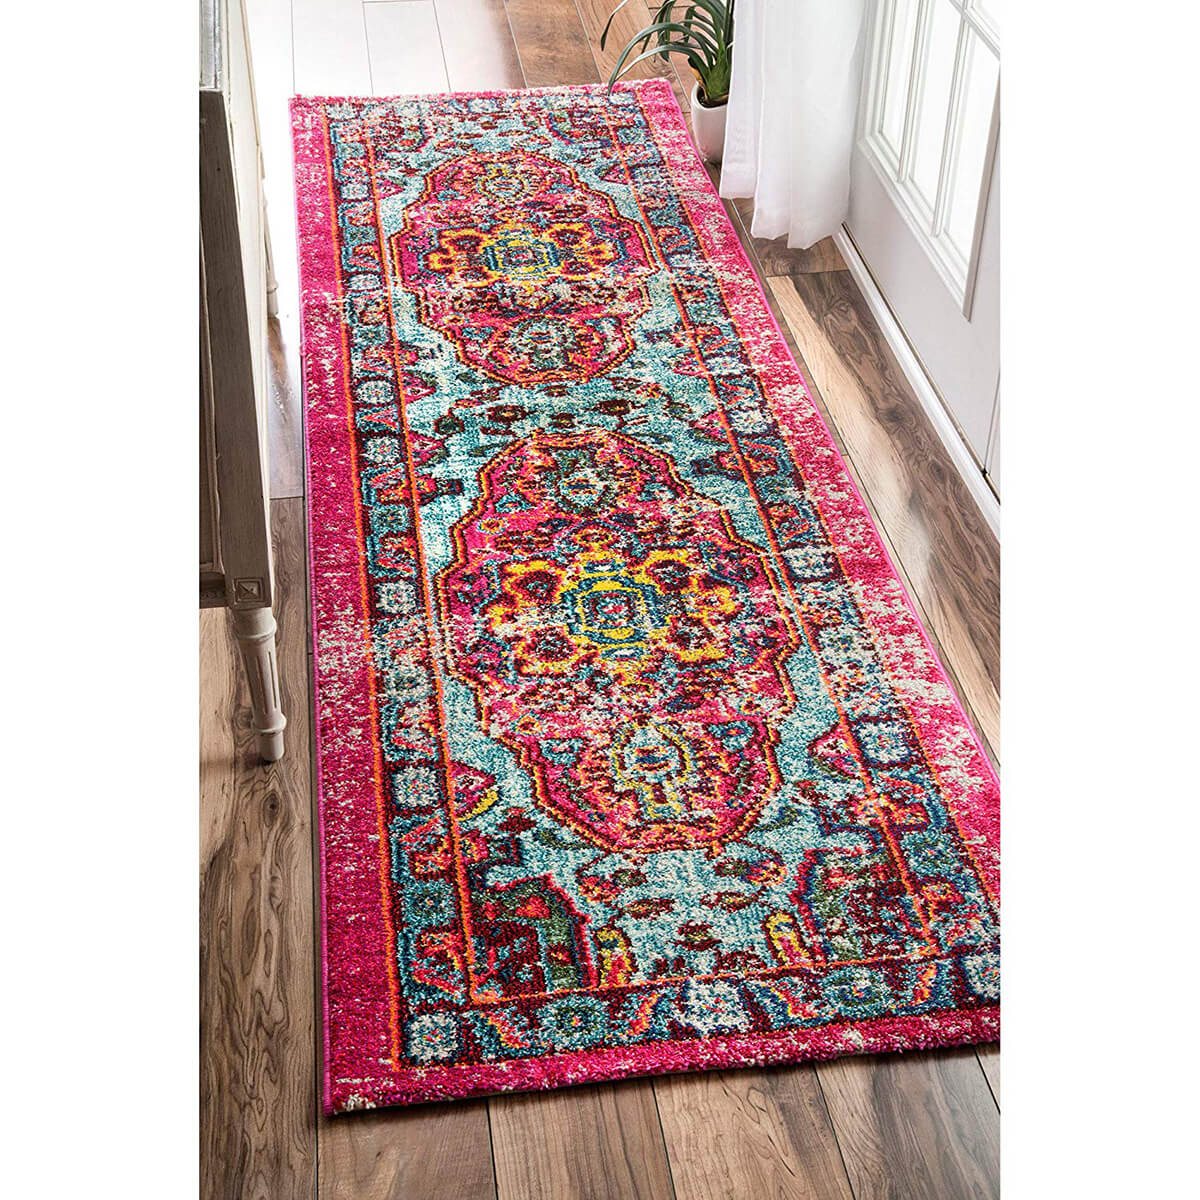 Beautiful Rug with a Boho Chic Vibe